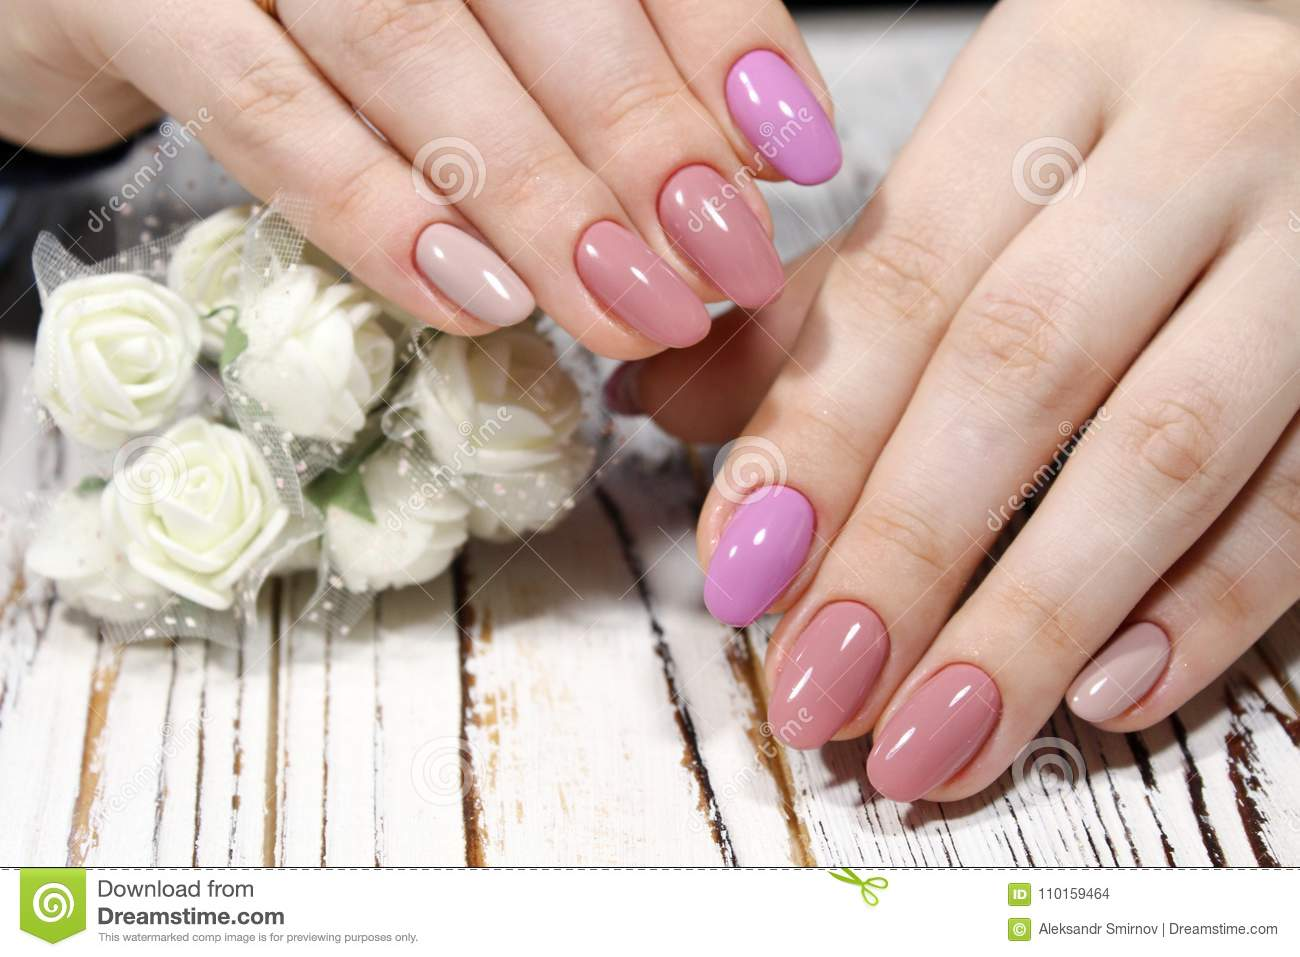 Perfect Manicure And Natural Nails  Stock Photo - Image of